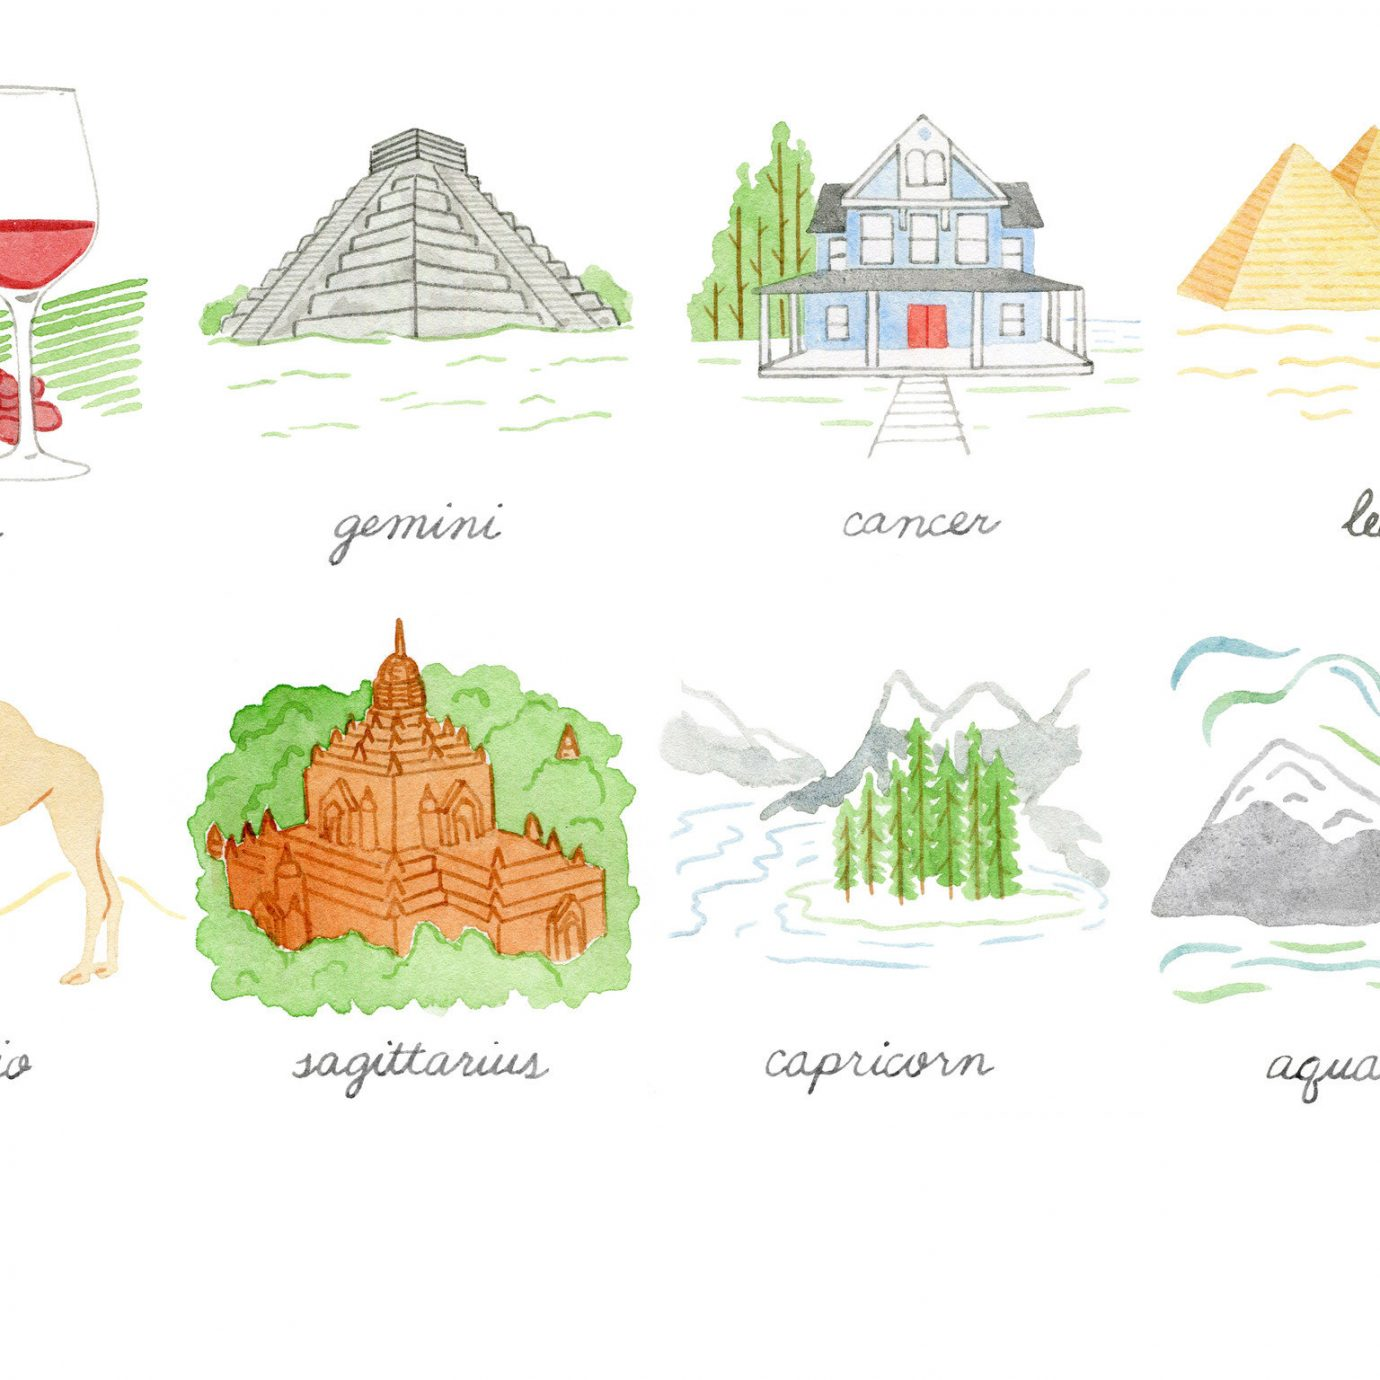 Style + Design text map cartoon product Play brand illustration